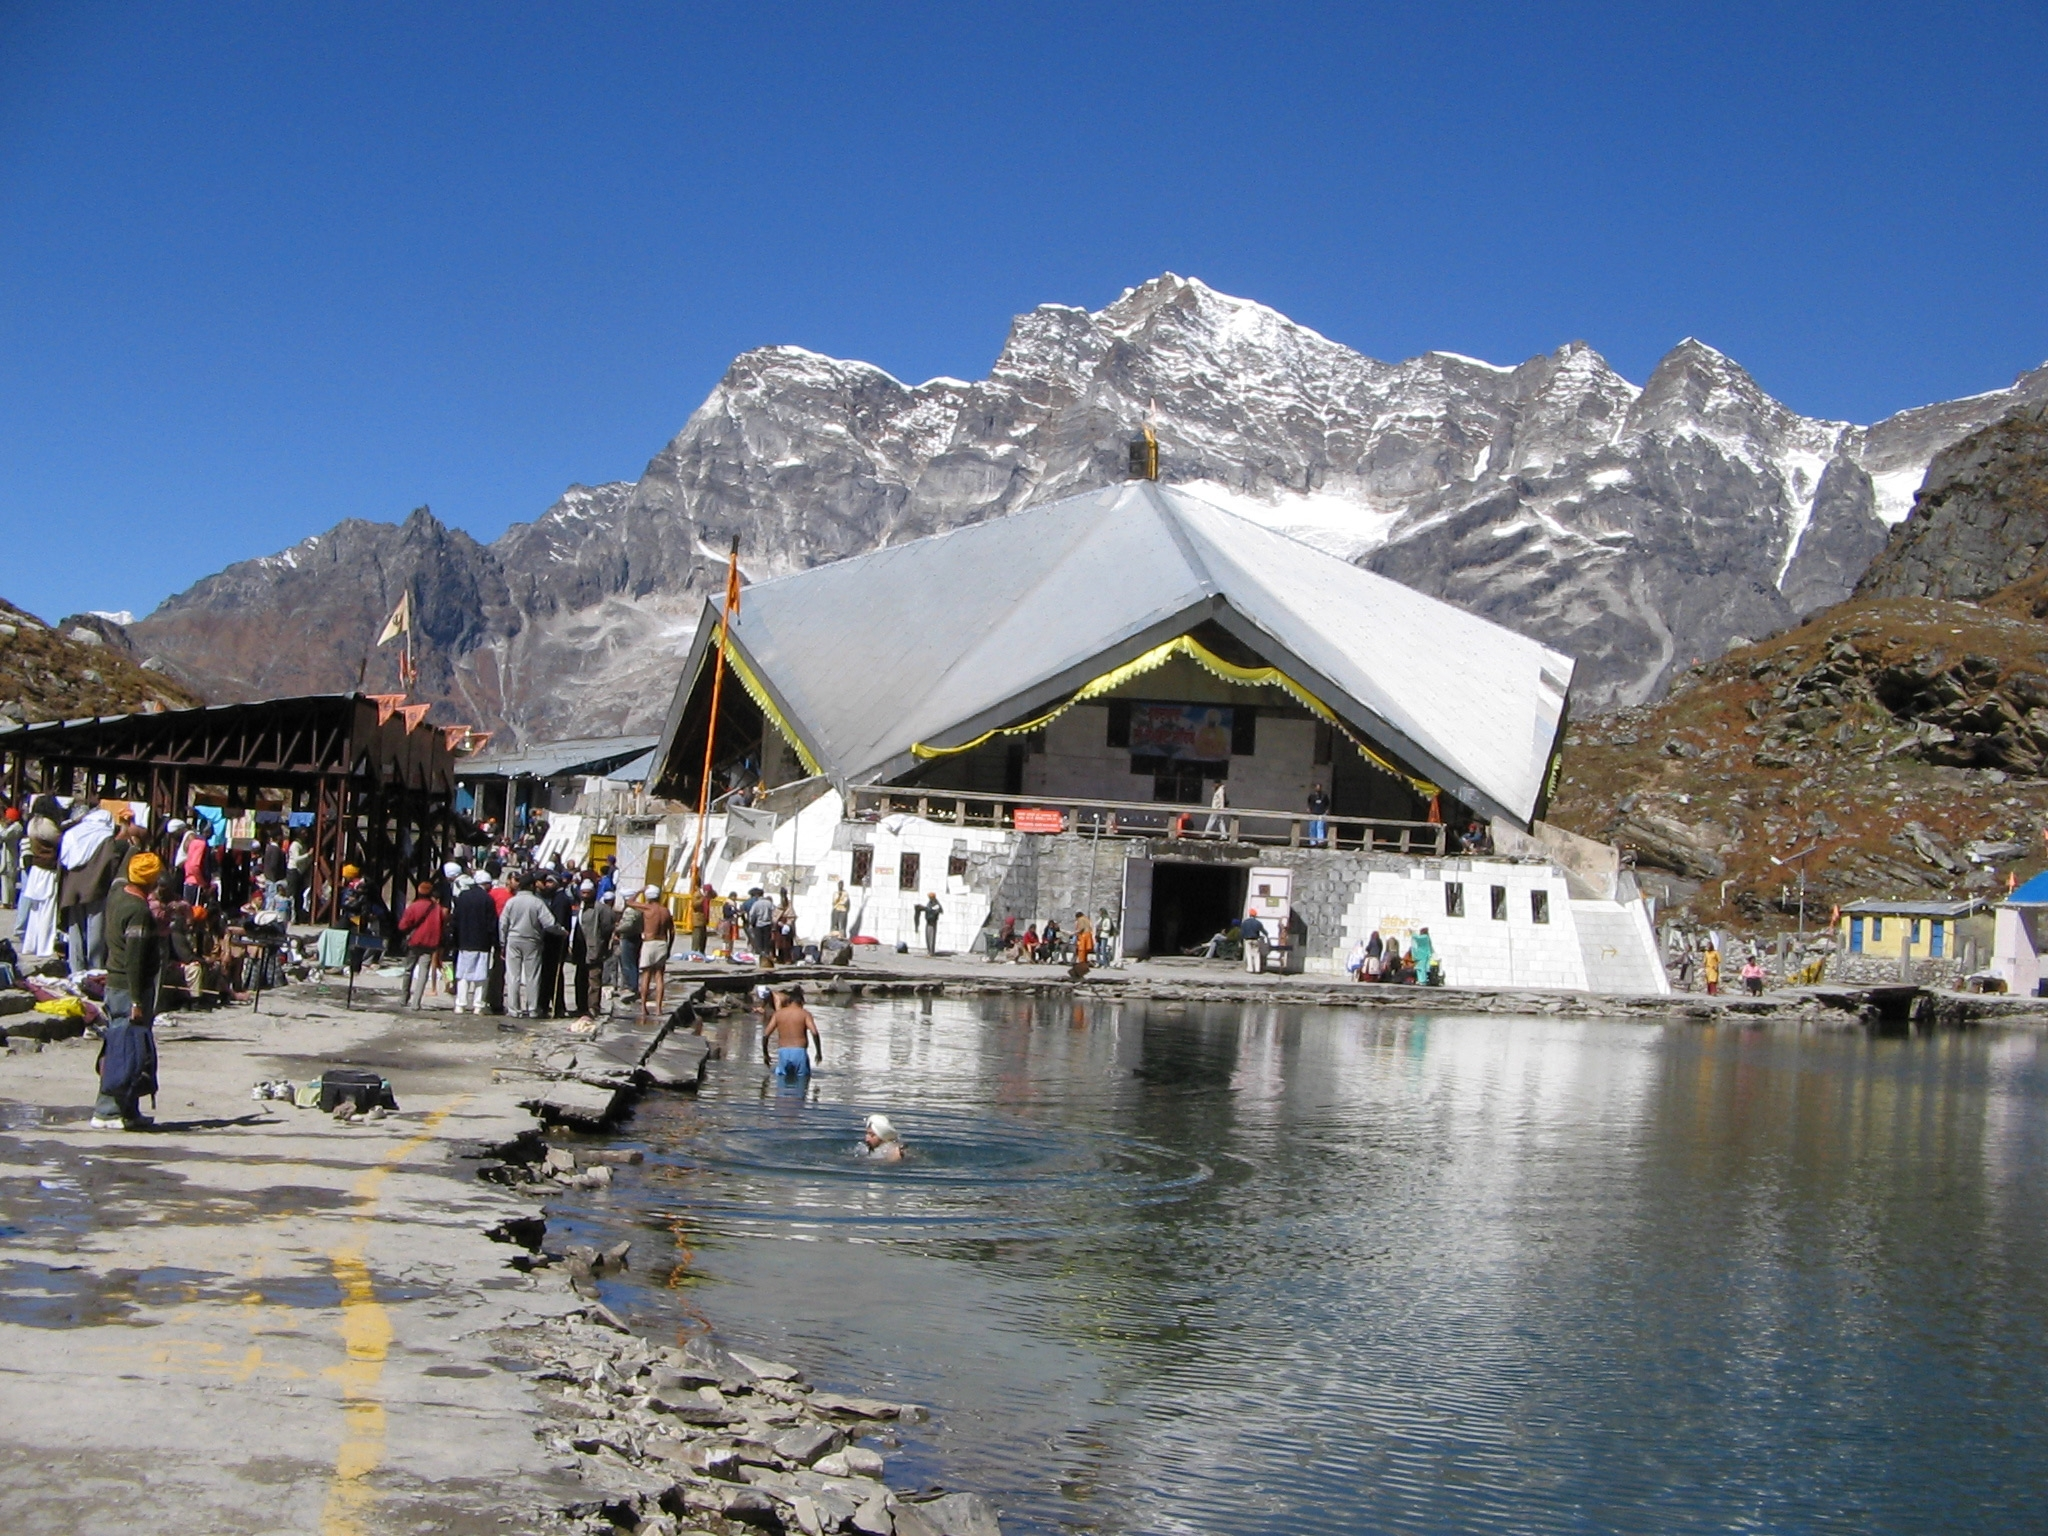 Tour Packages From Delhi To Hemkund Sahib